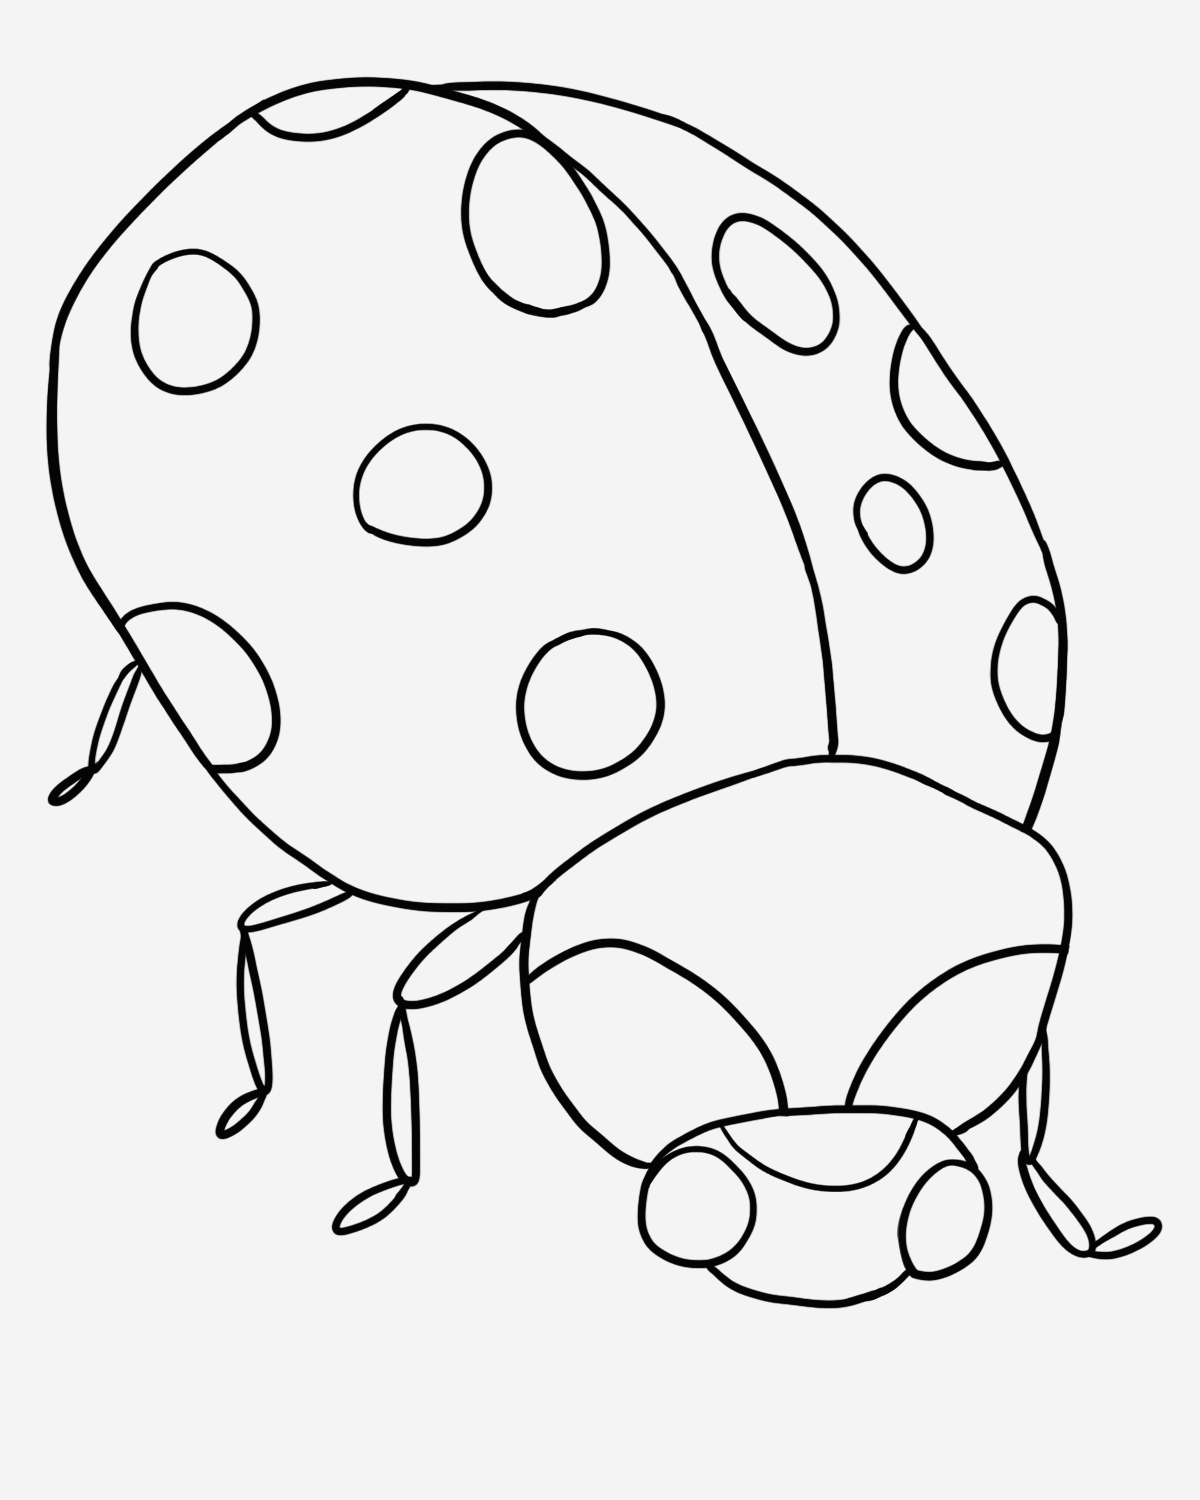 Coloriage Coccinelle Fresh Coccinelle 117 Animaux – Coloriages   Imprimer Of Coloriage Coccinelle